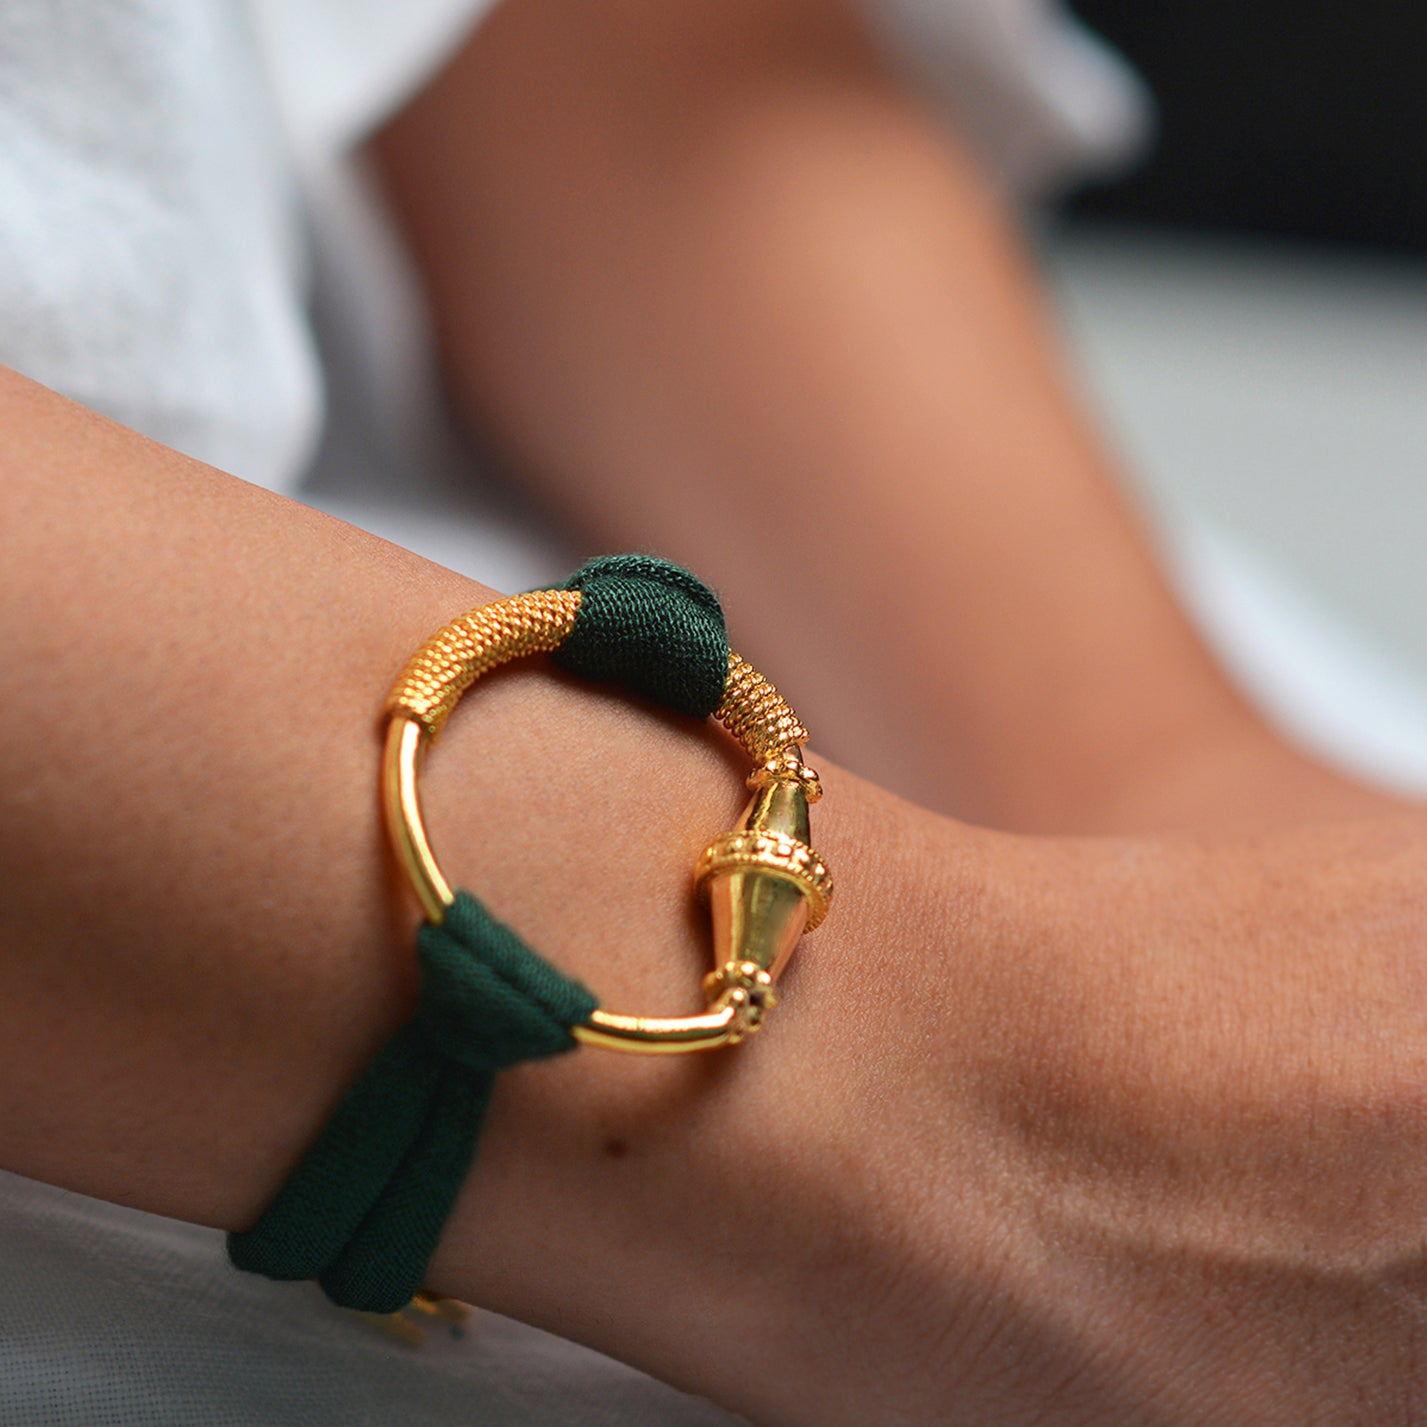 Loop Bracelet by Narinari